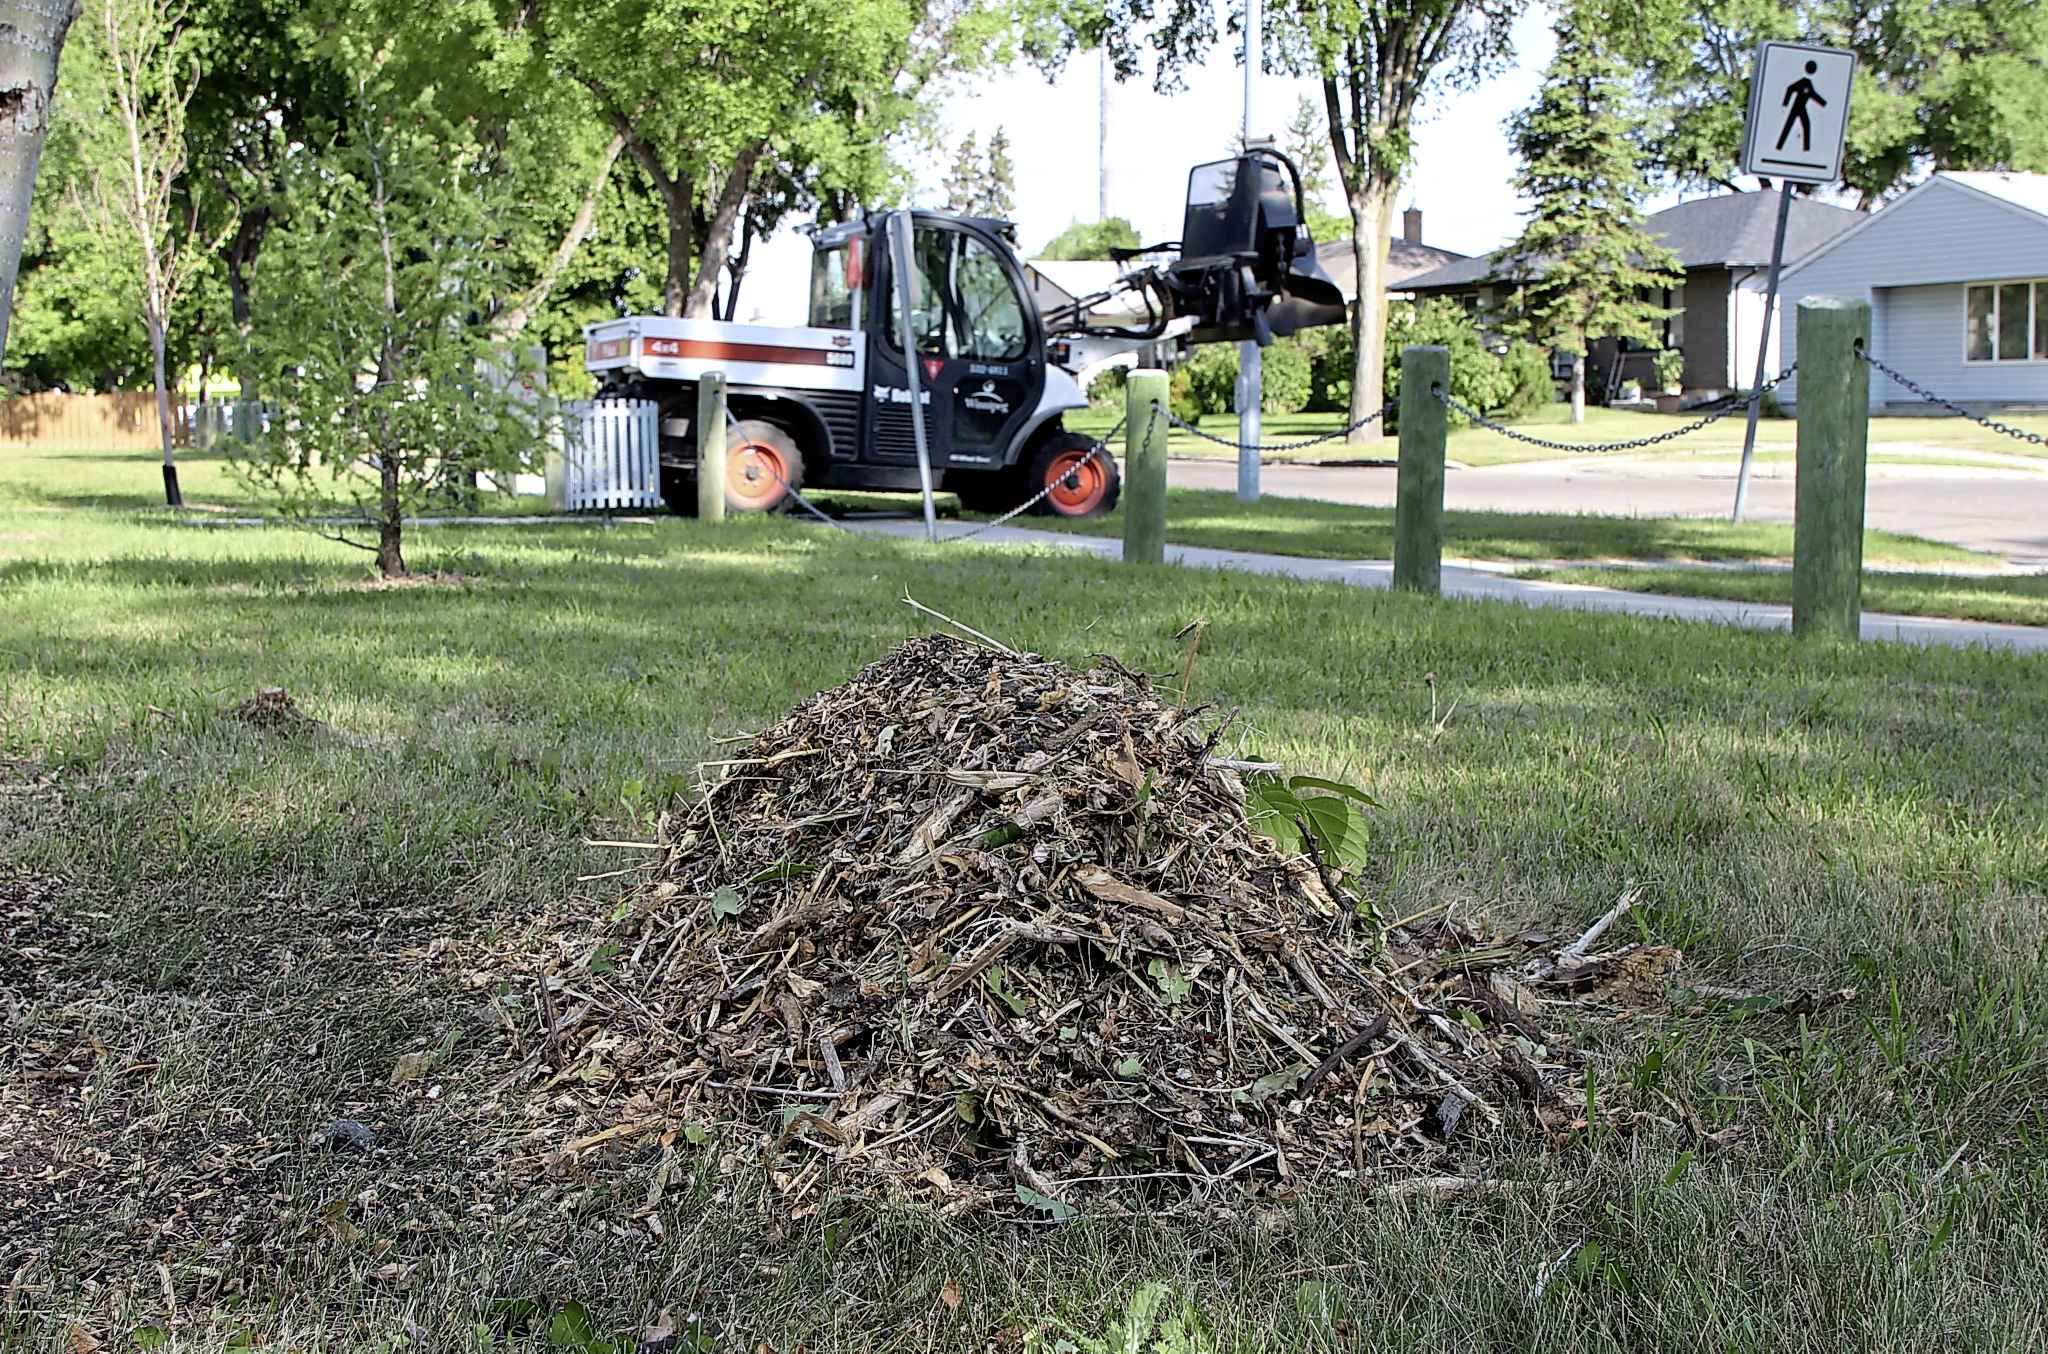 A city employee was at Richardson Fir Tot Lot with heavy machinery Wednesday, one week after residents say the first trees and bushes were removed.